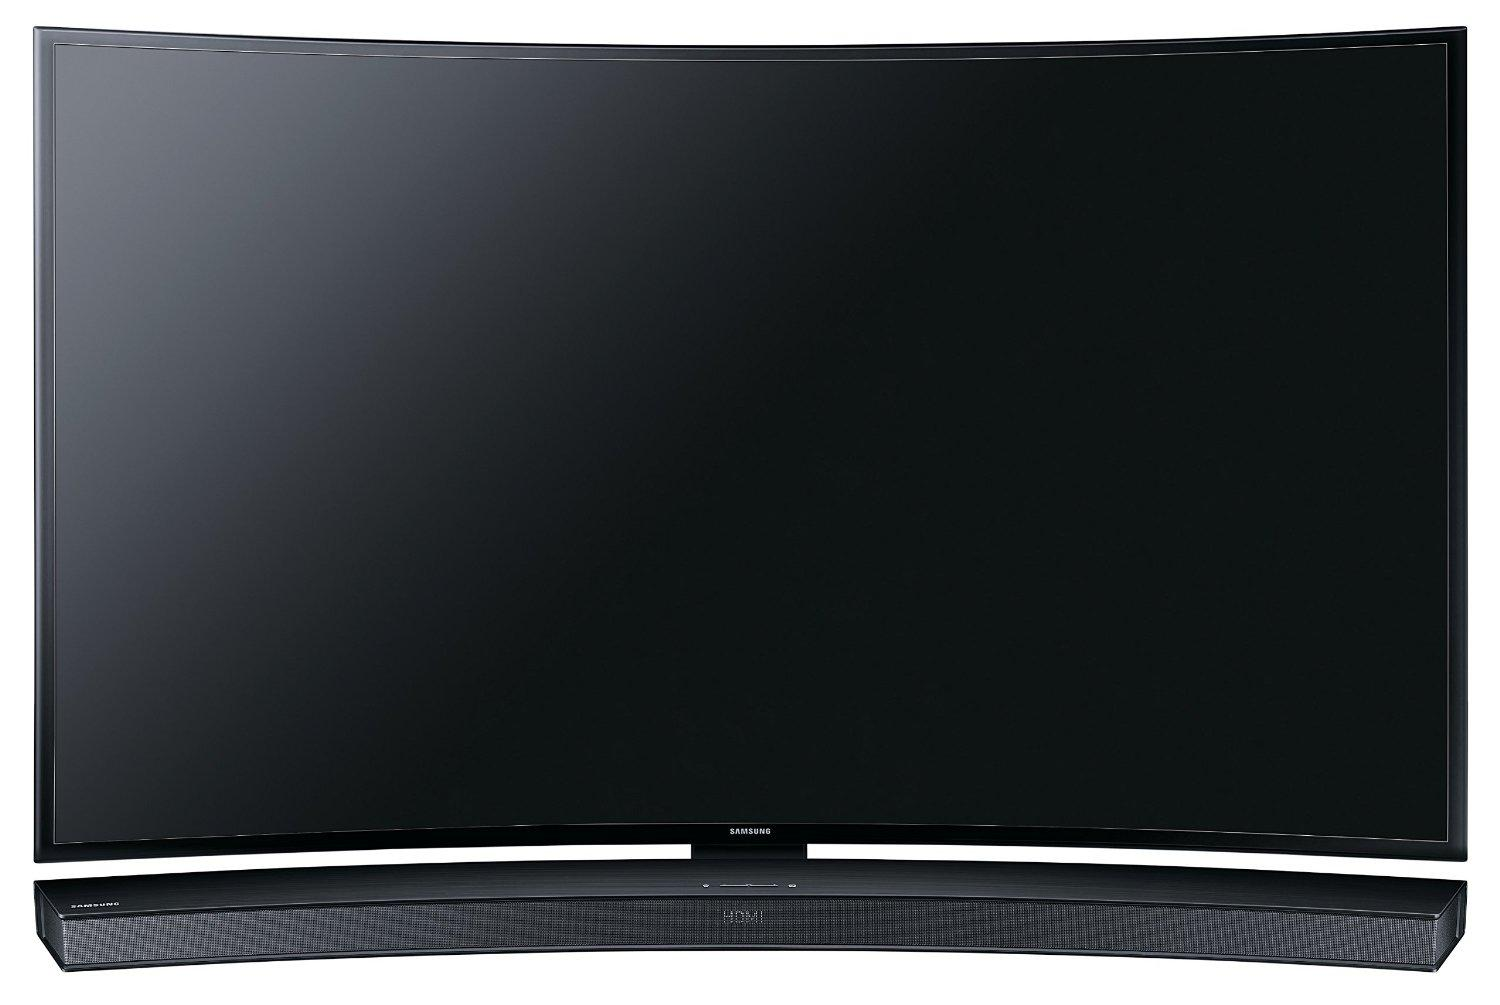 samsung hw j6001 curved 6 1 soundbar 300w kabelloser. Black Bedroom Furniture Sets. Home Design Ideas